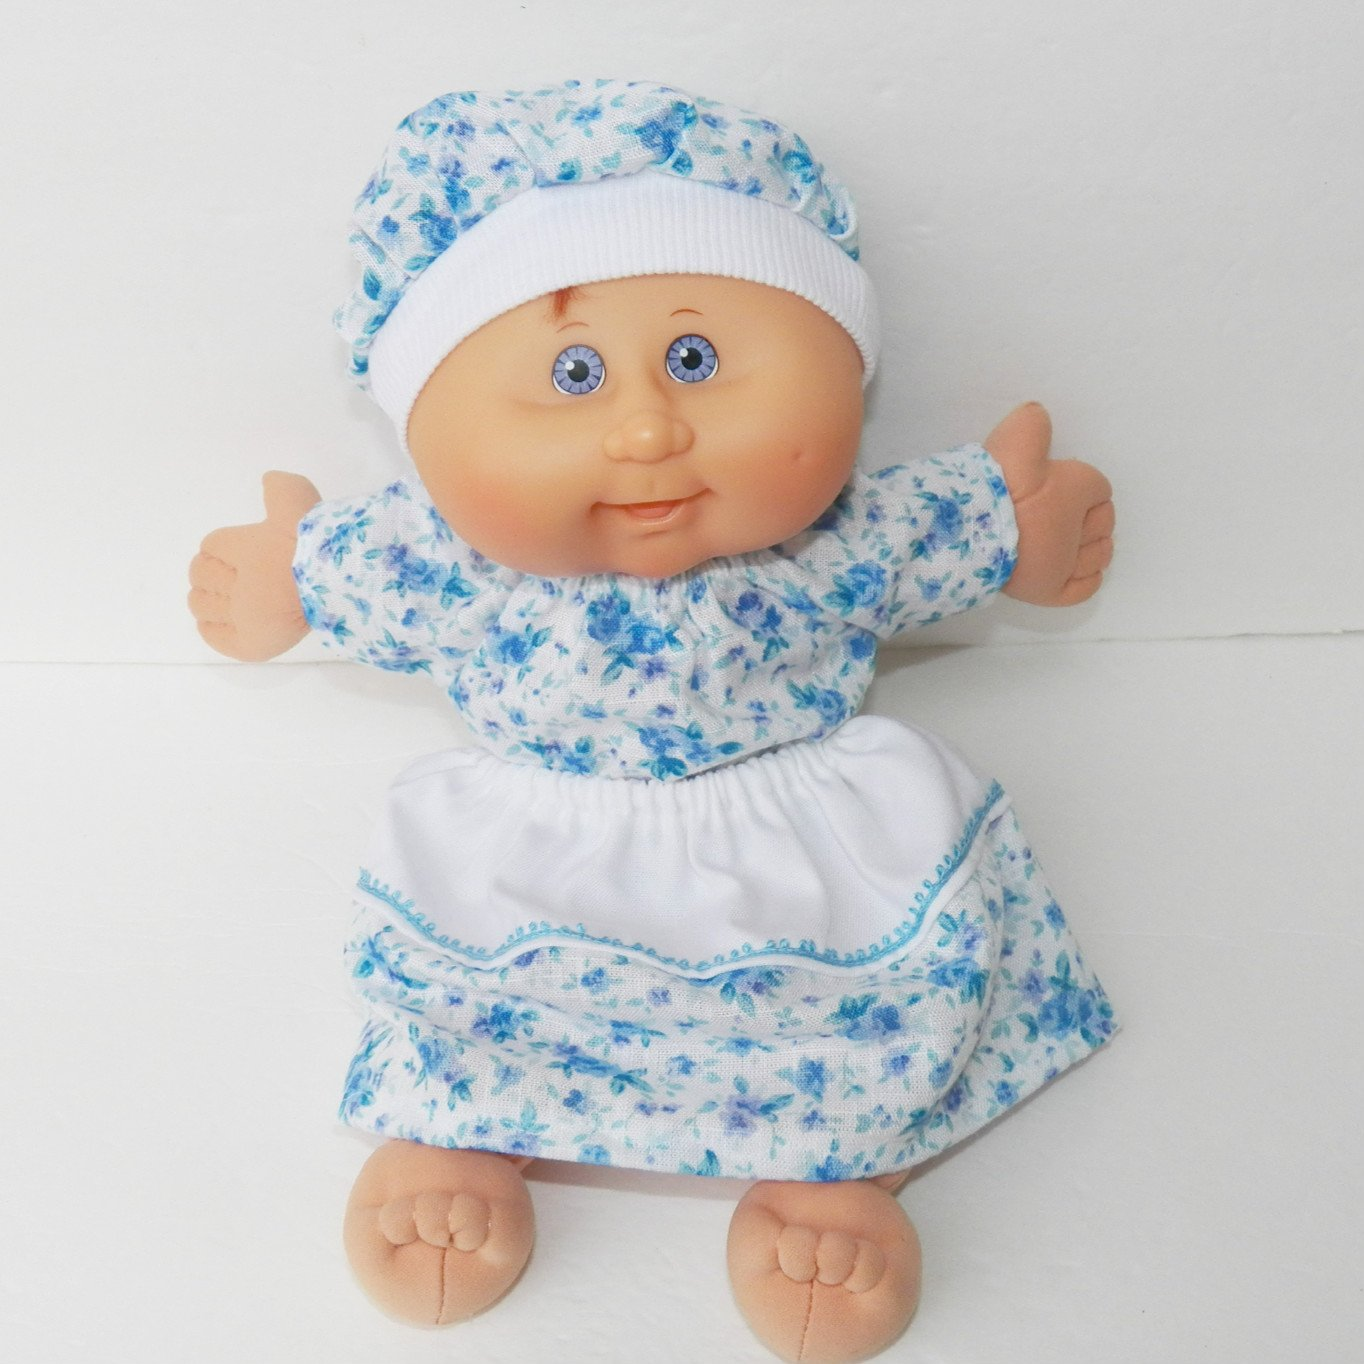 Cabbage Patch KIDS 14 inch doll clothes handmade Blue Floral Skirt and Blouse